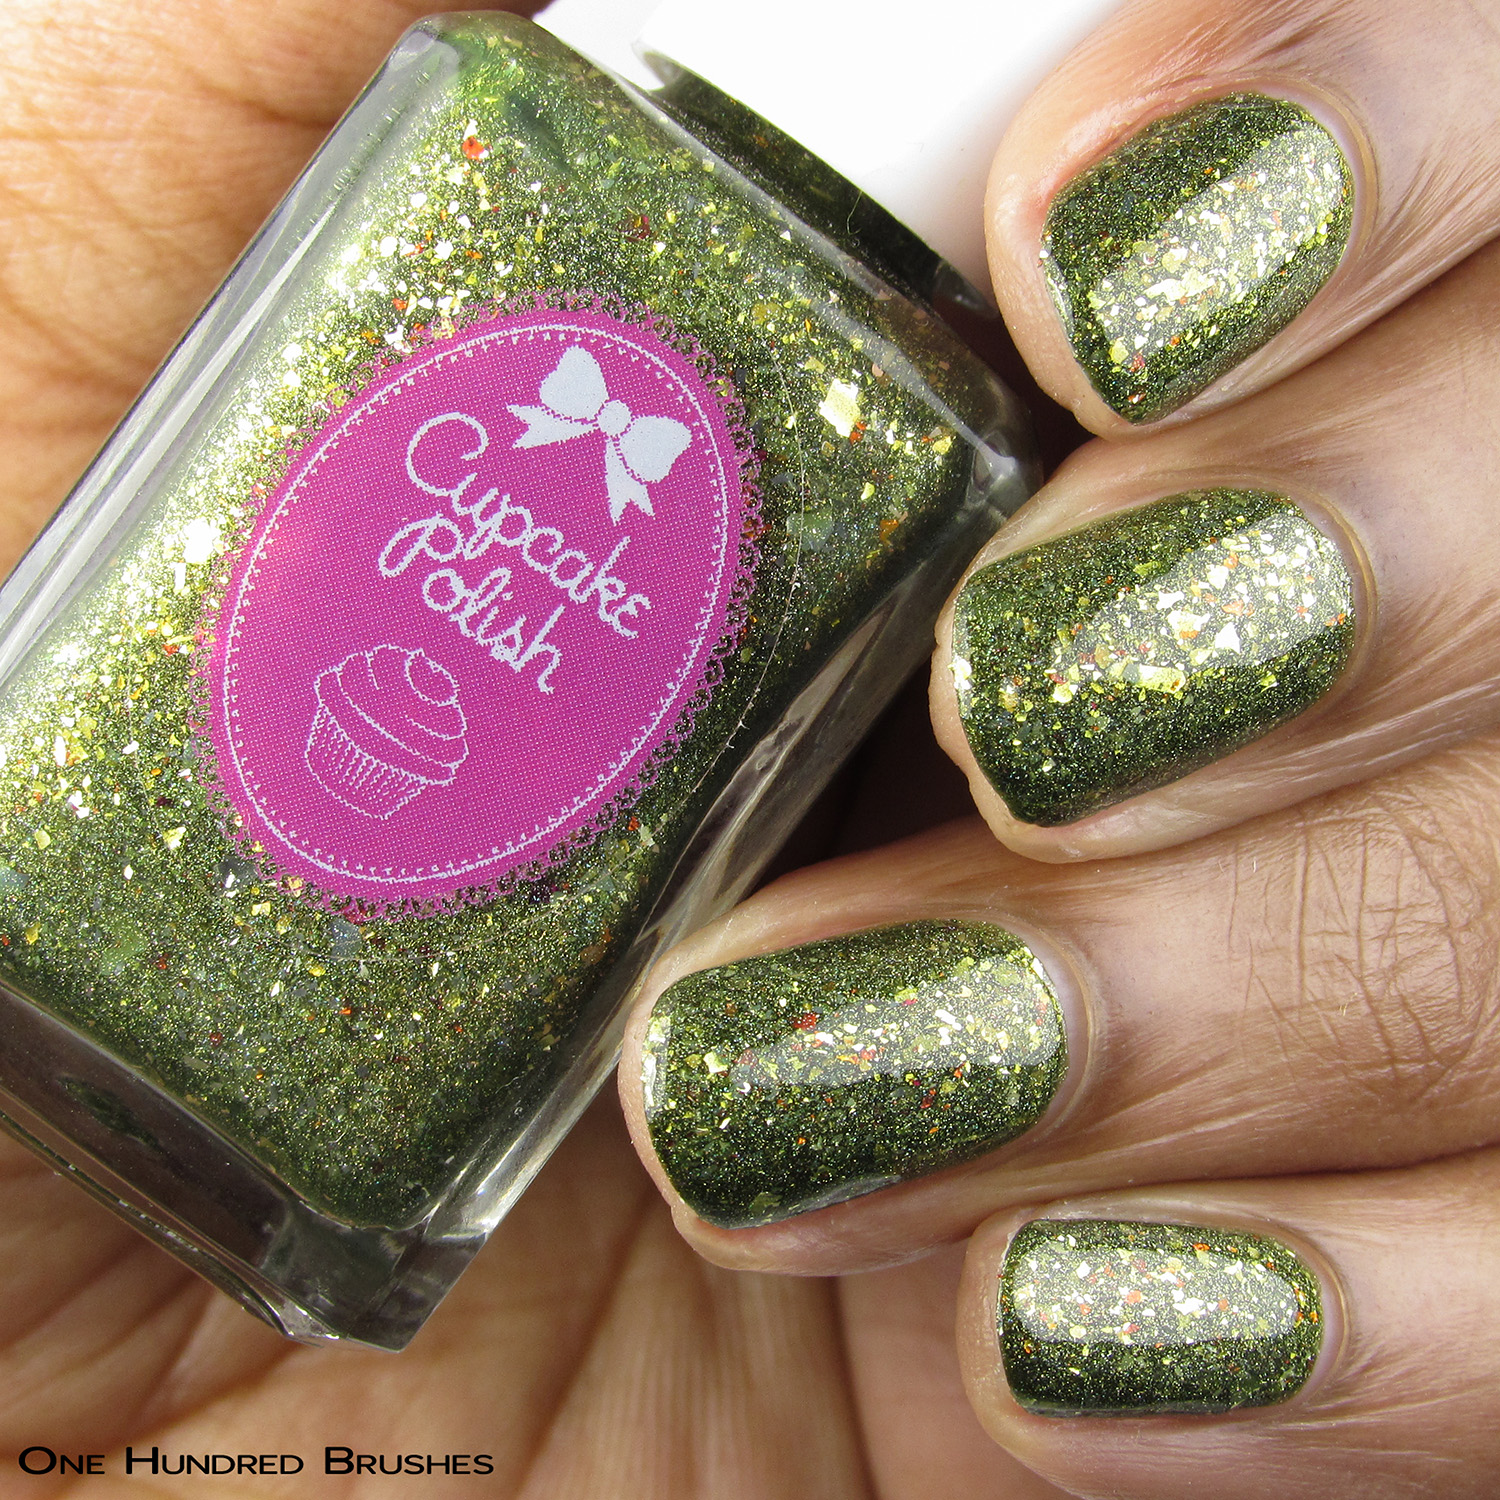 Oh My Gourd - Cupcake Polish - The Holo Hookup Oct 2019